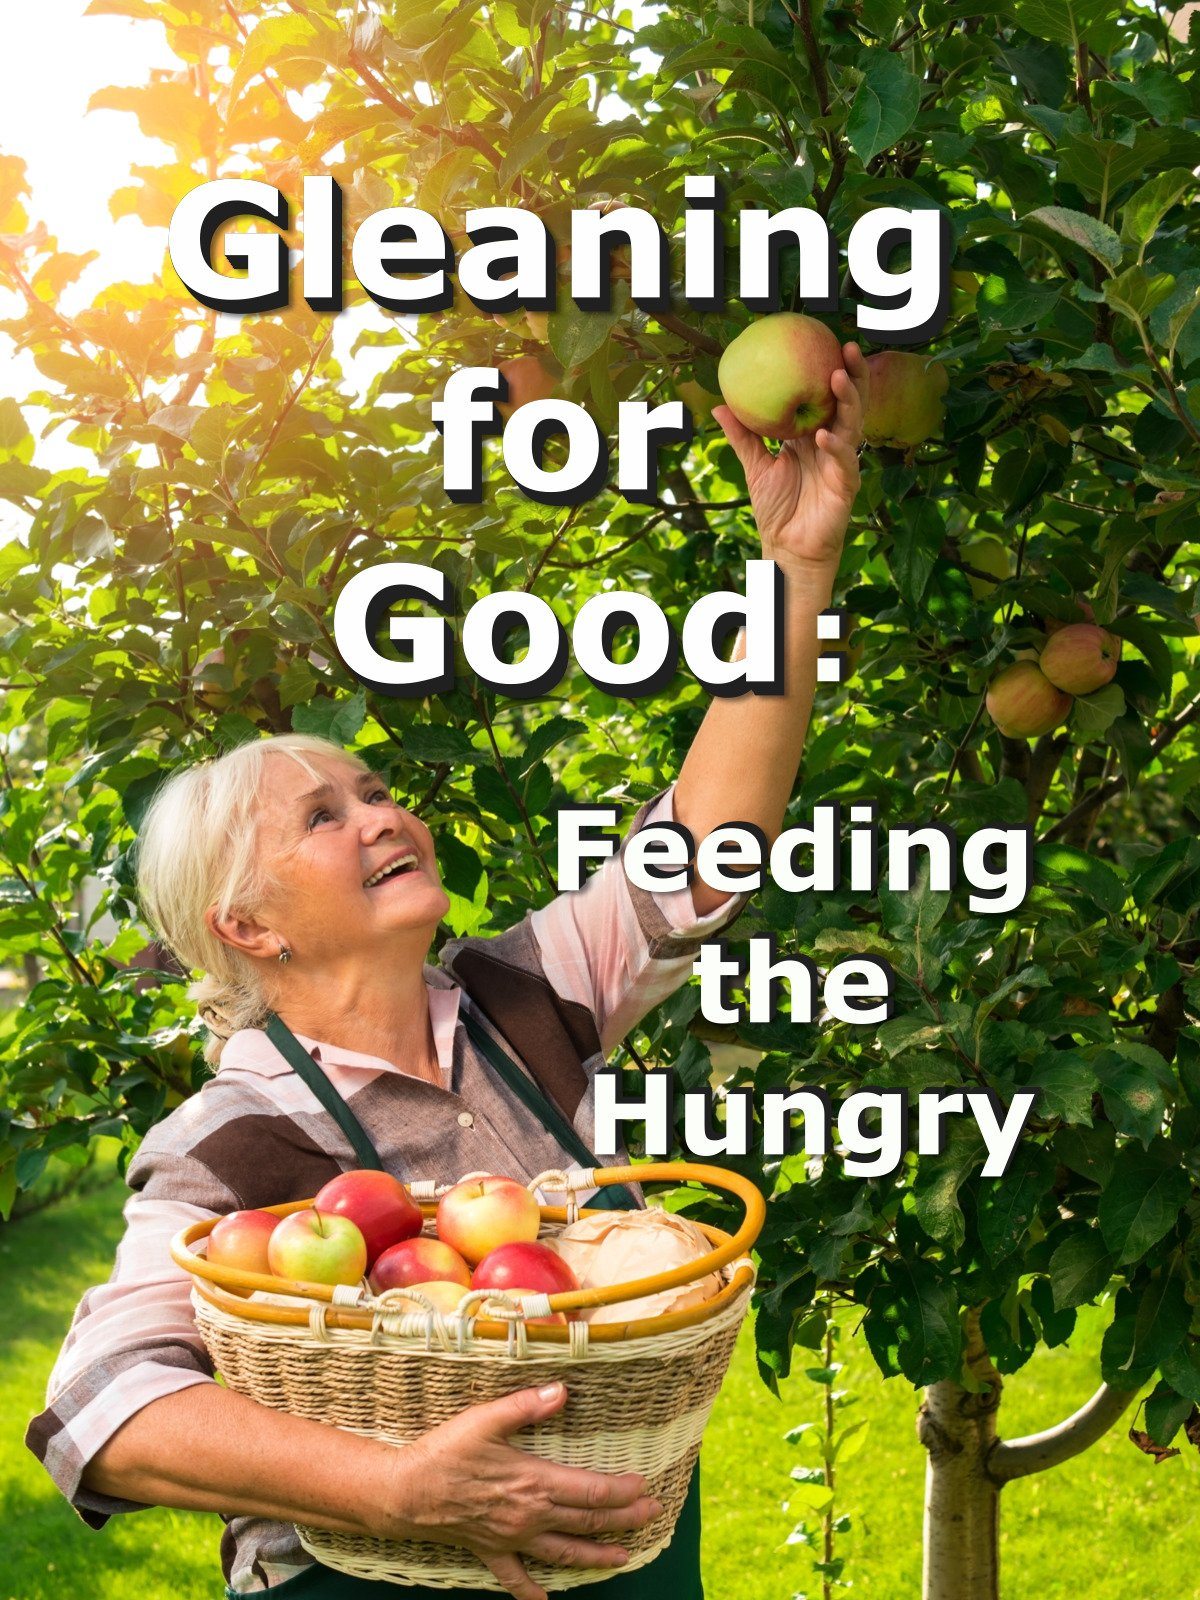 Gleaning for Good: Feeding the Hungry